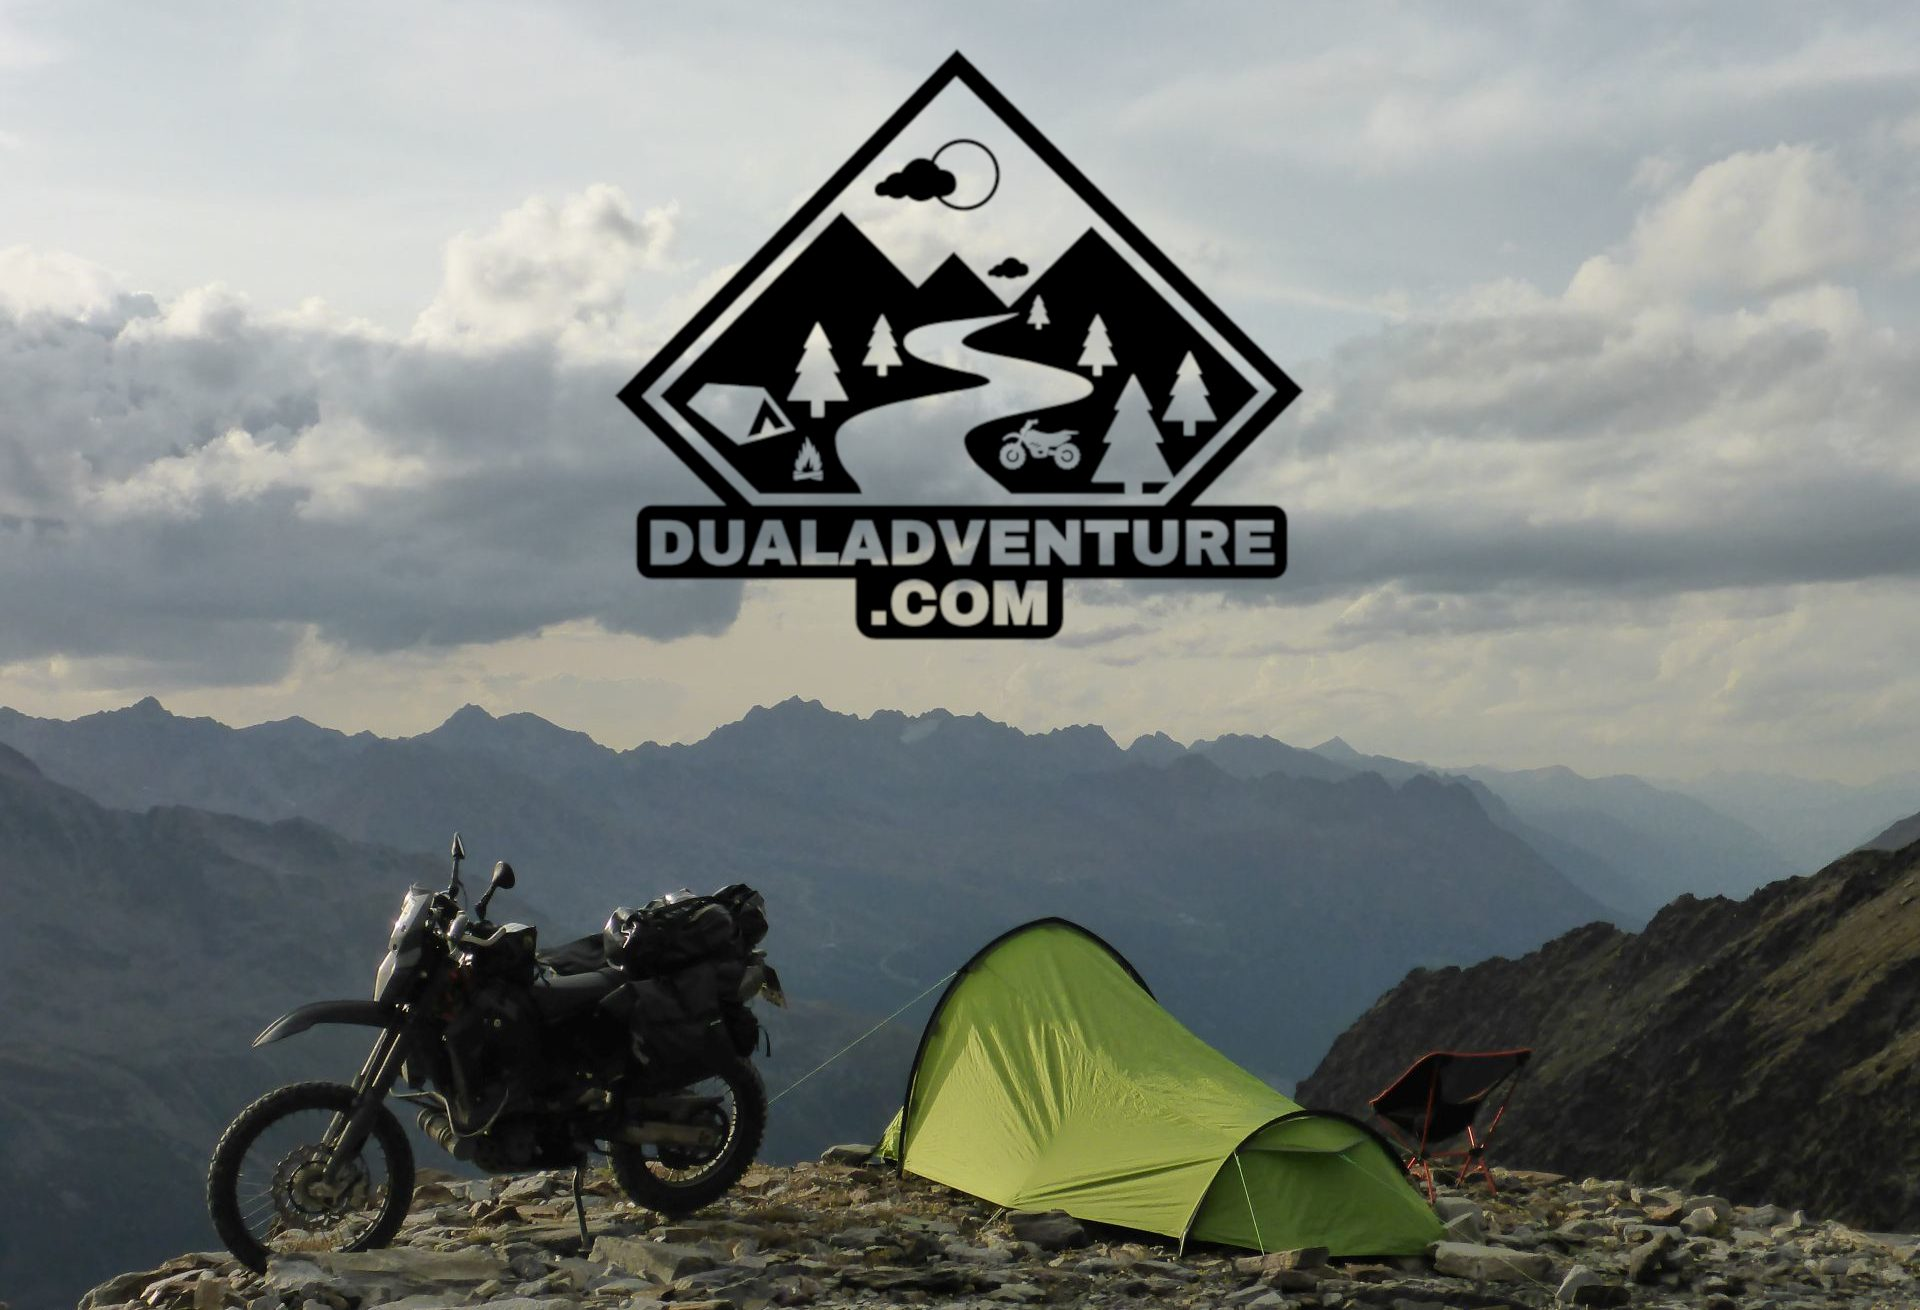 This website is all about riding a Dual-Sport-Motorcycle adventurous! Exciting ride reports, equipment, modifications and more!